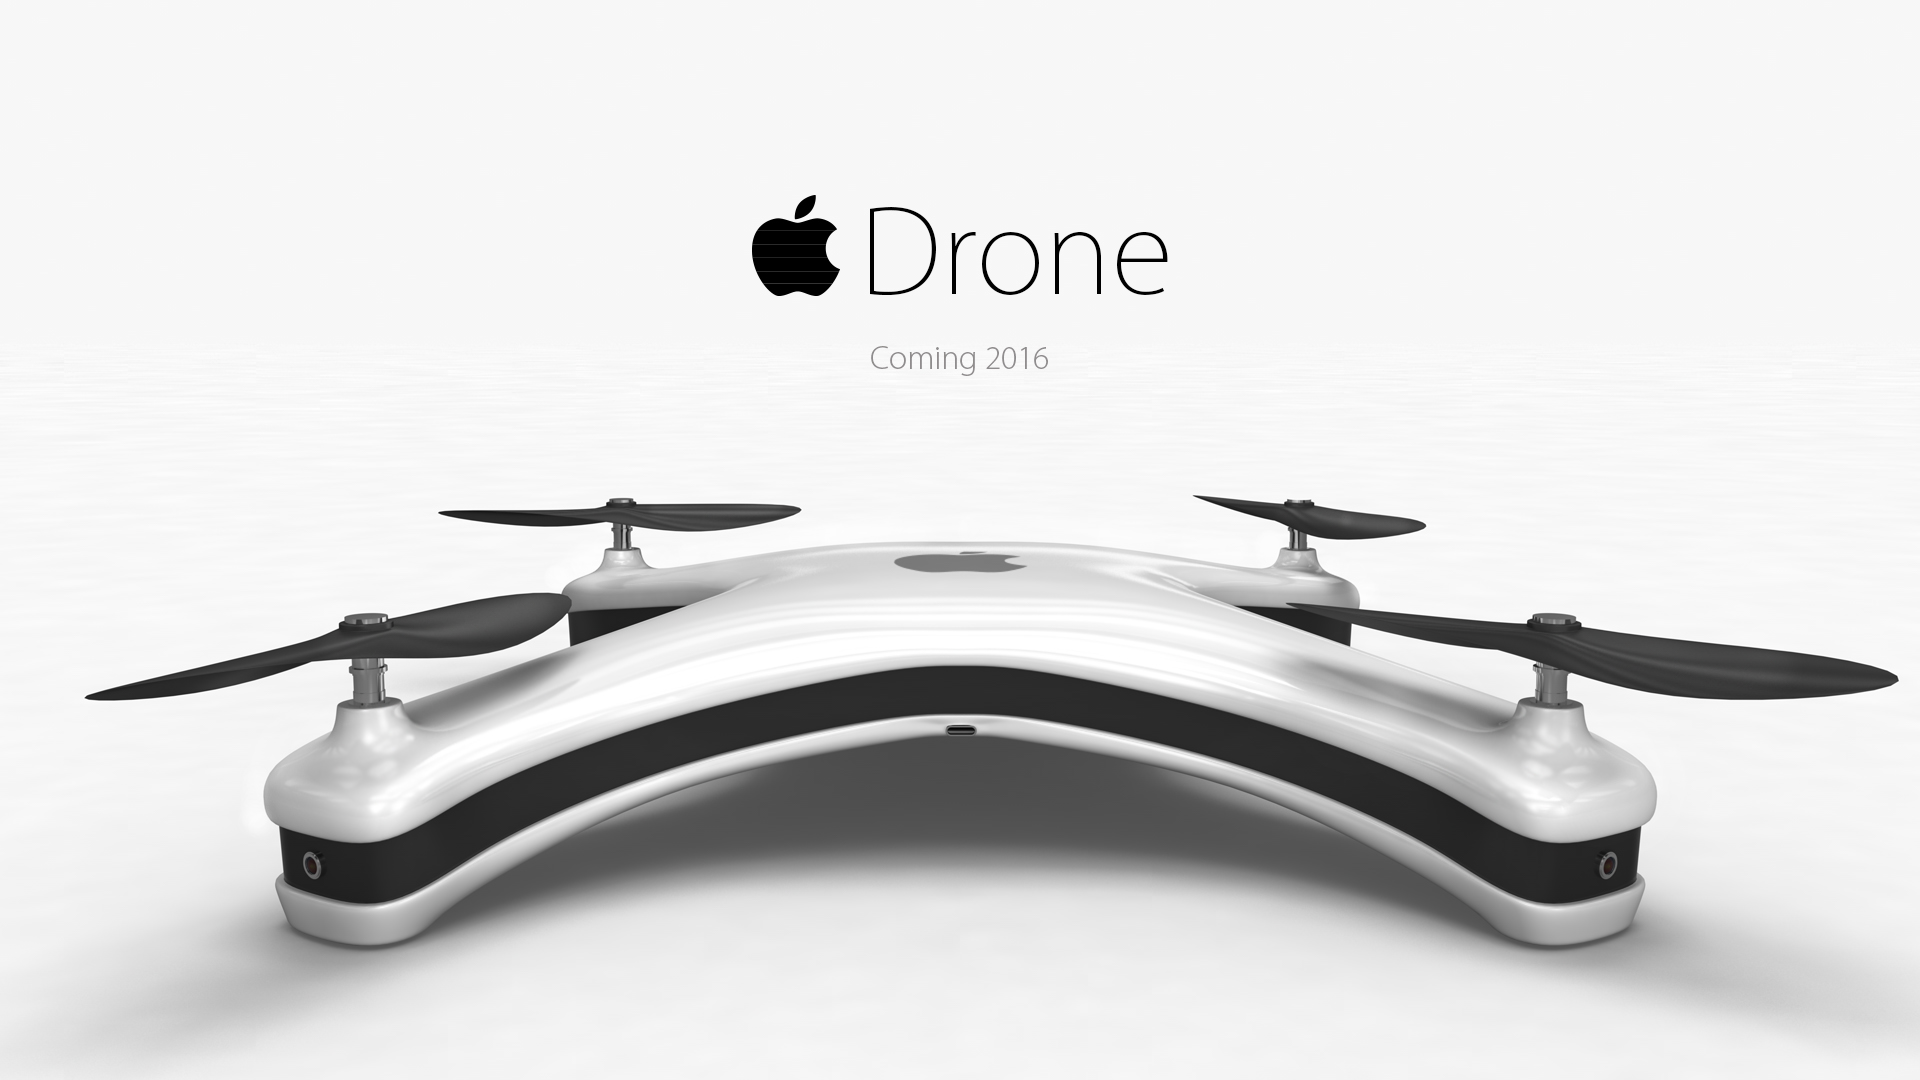 Apple Dron